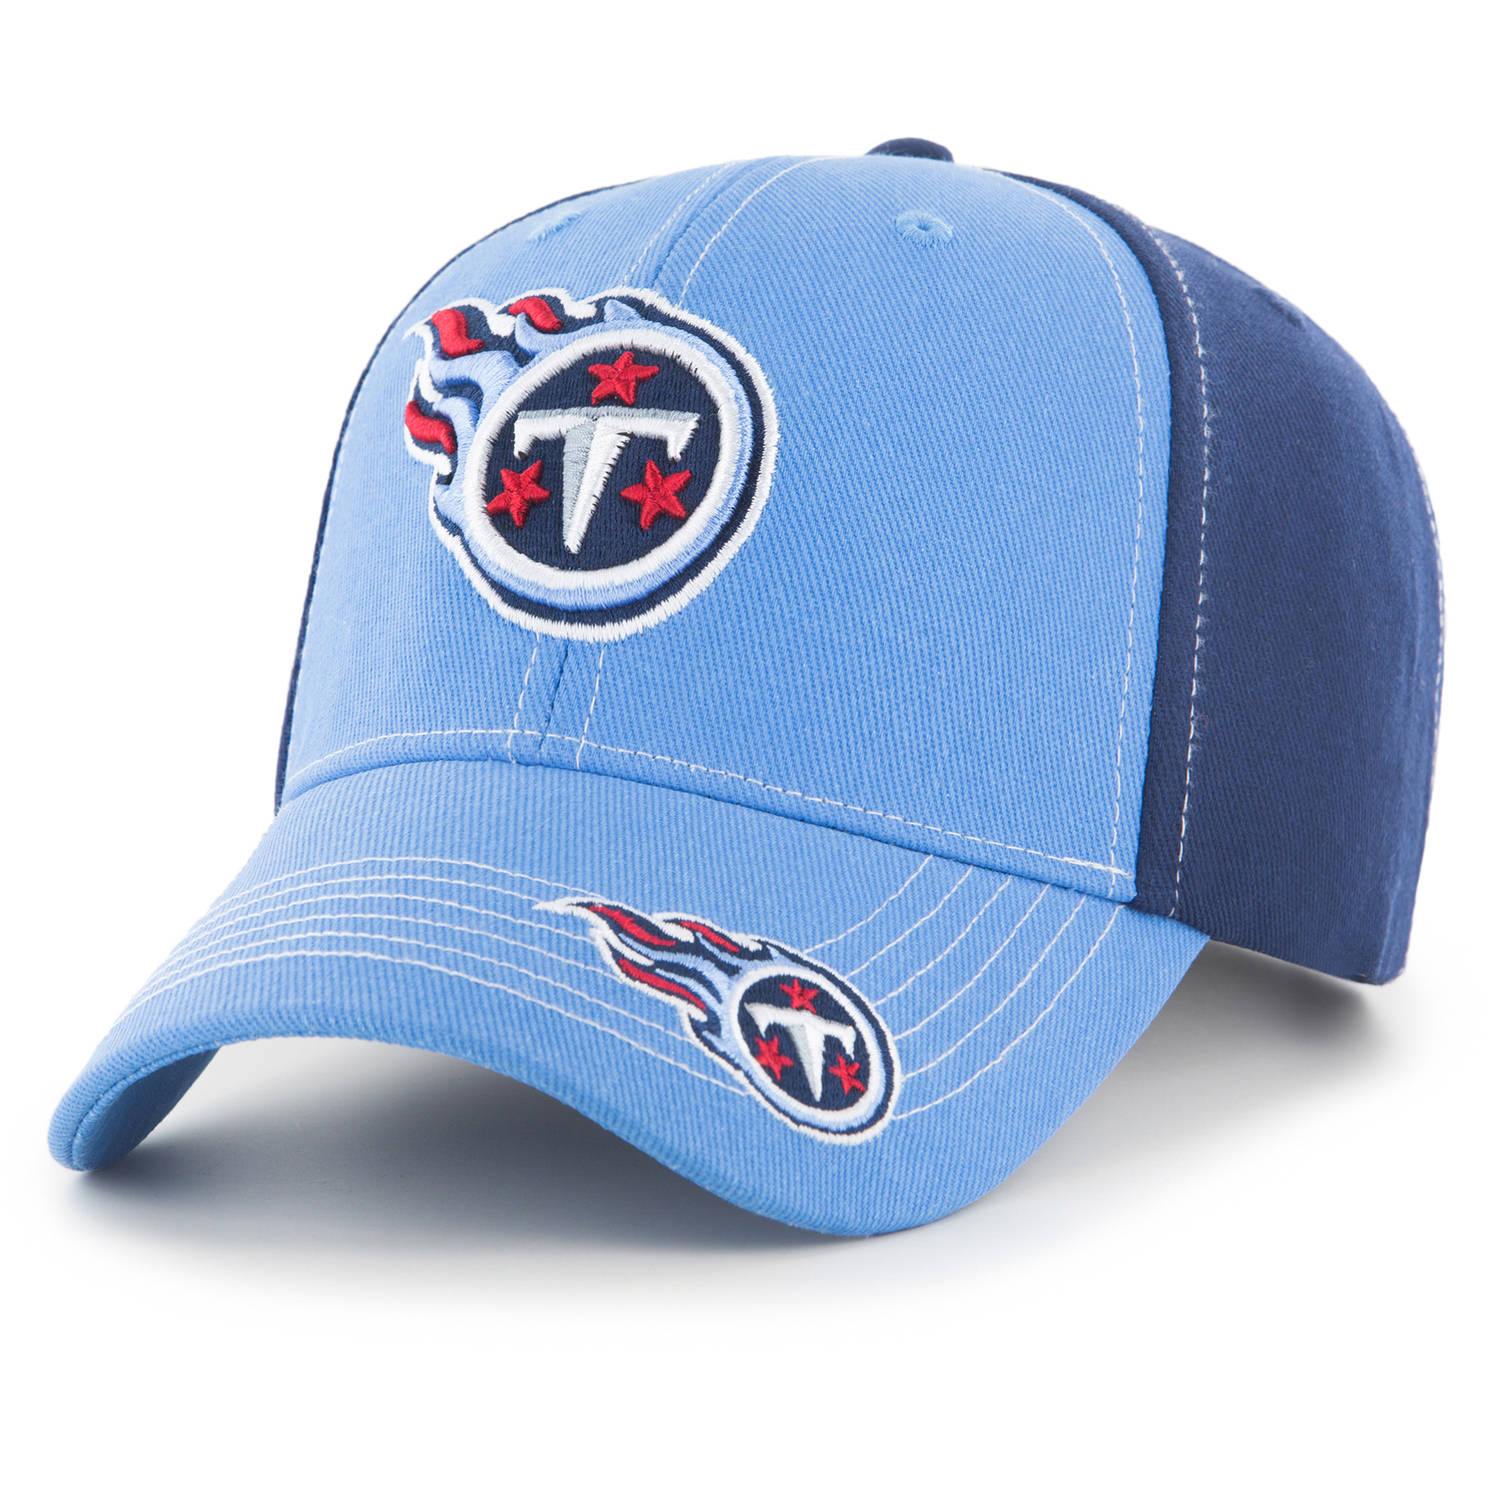 NFL Tennessee Titans Revolver Cap / Hat by Fan Favorite